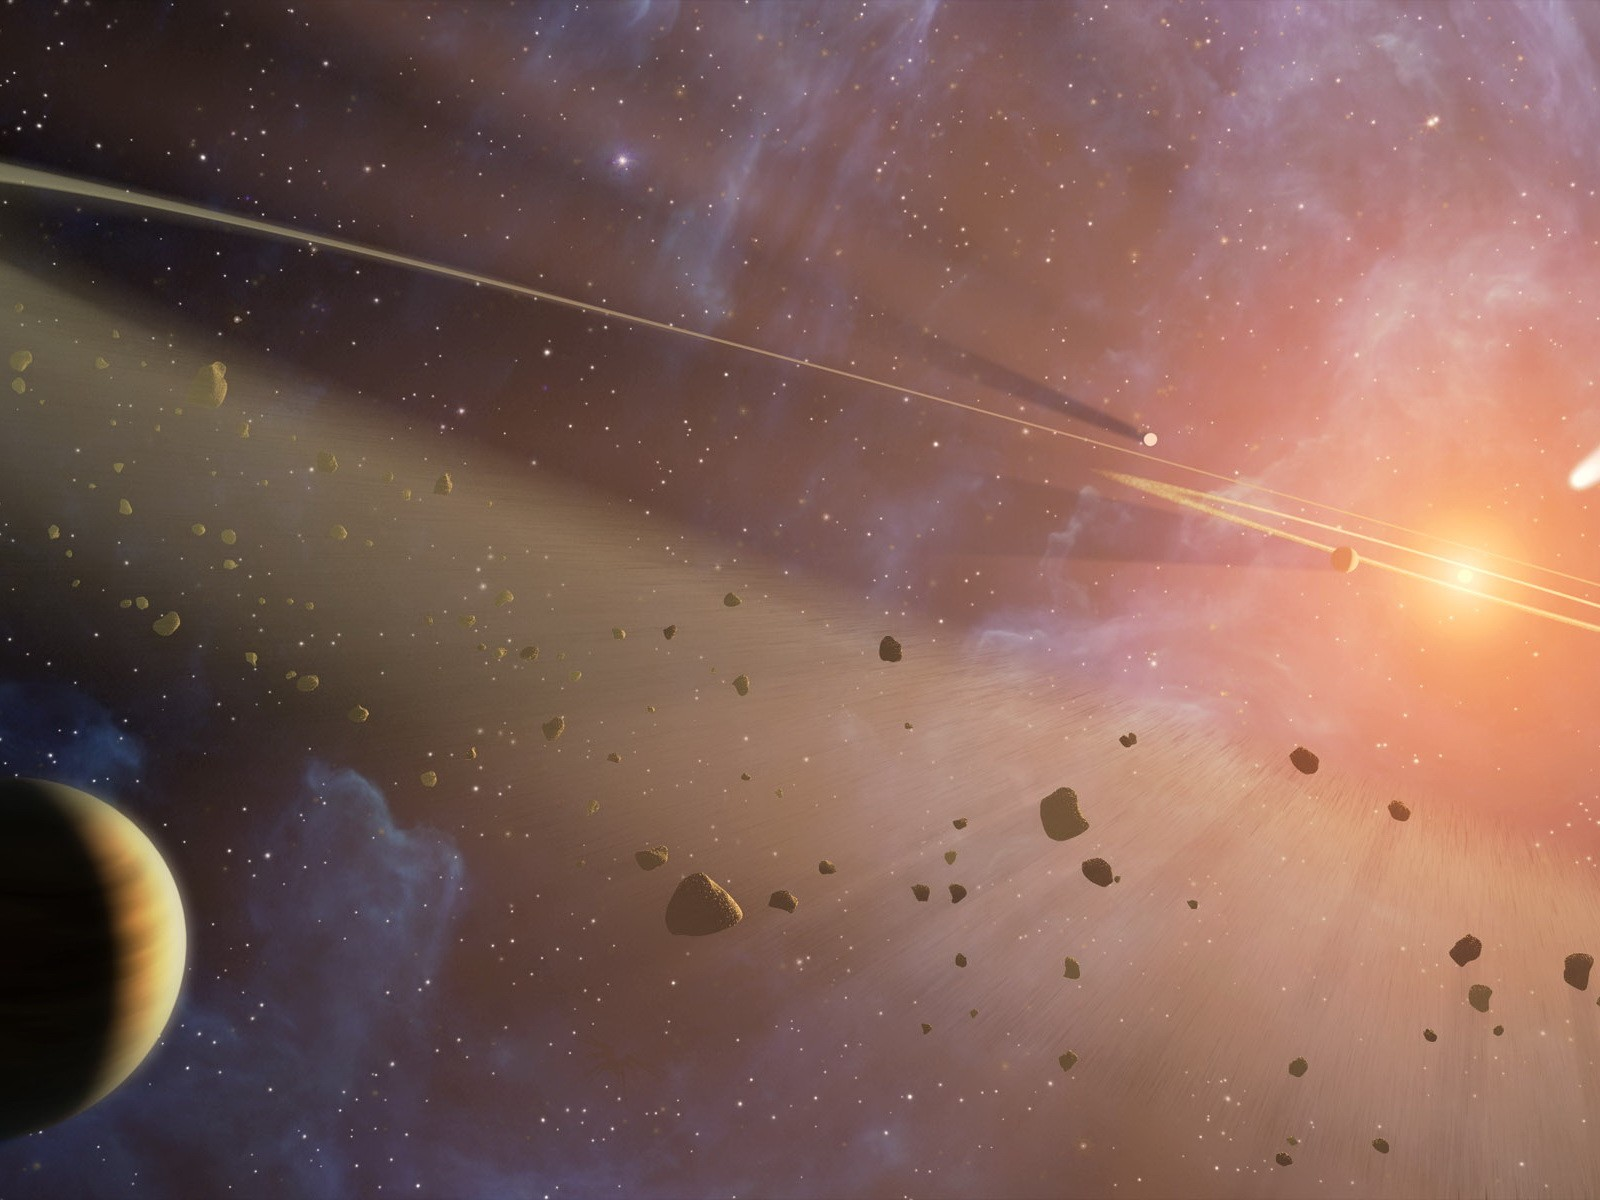 Wallpapers the asteroid belt in star rays free desktop backgrounds